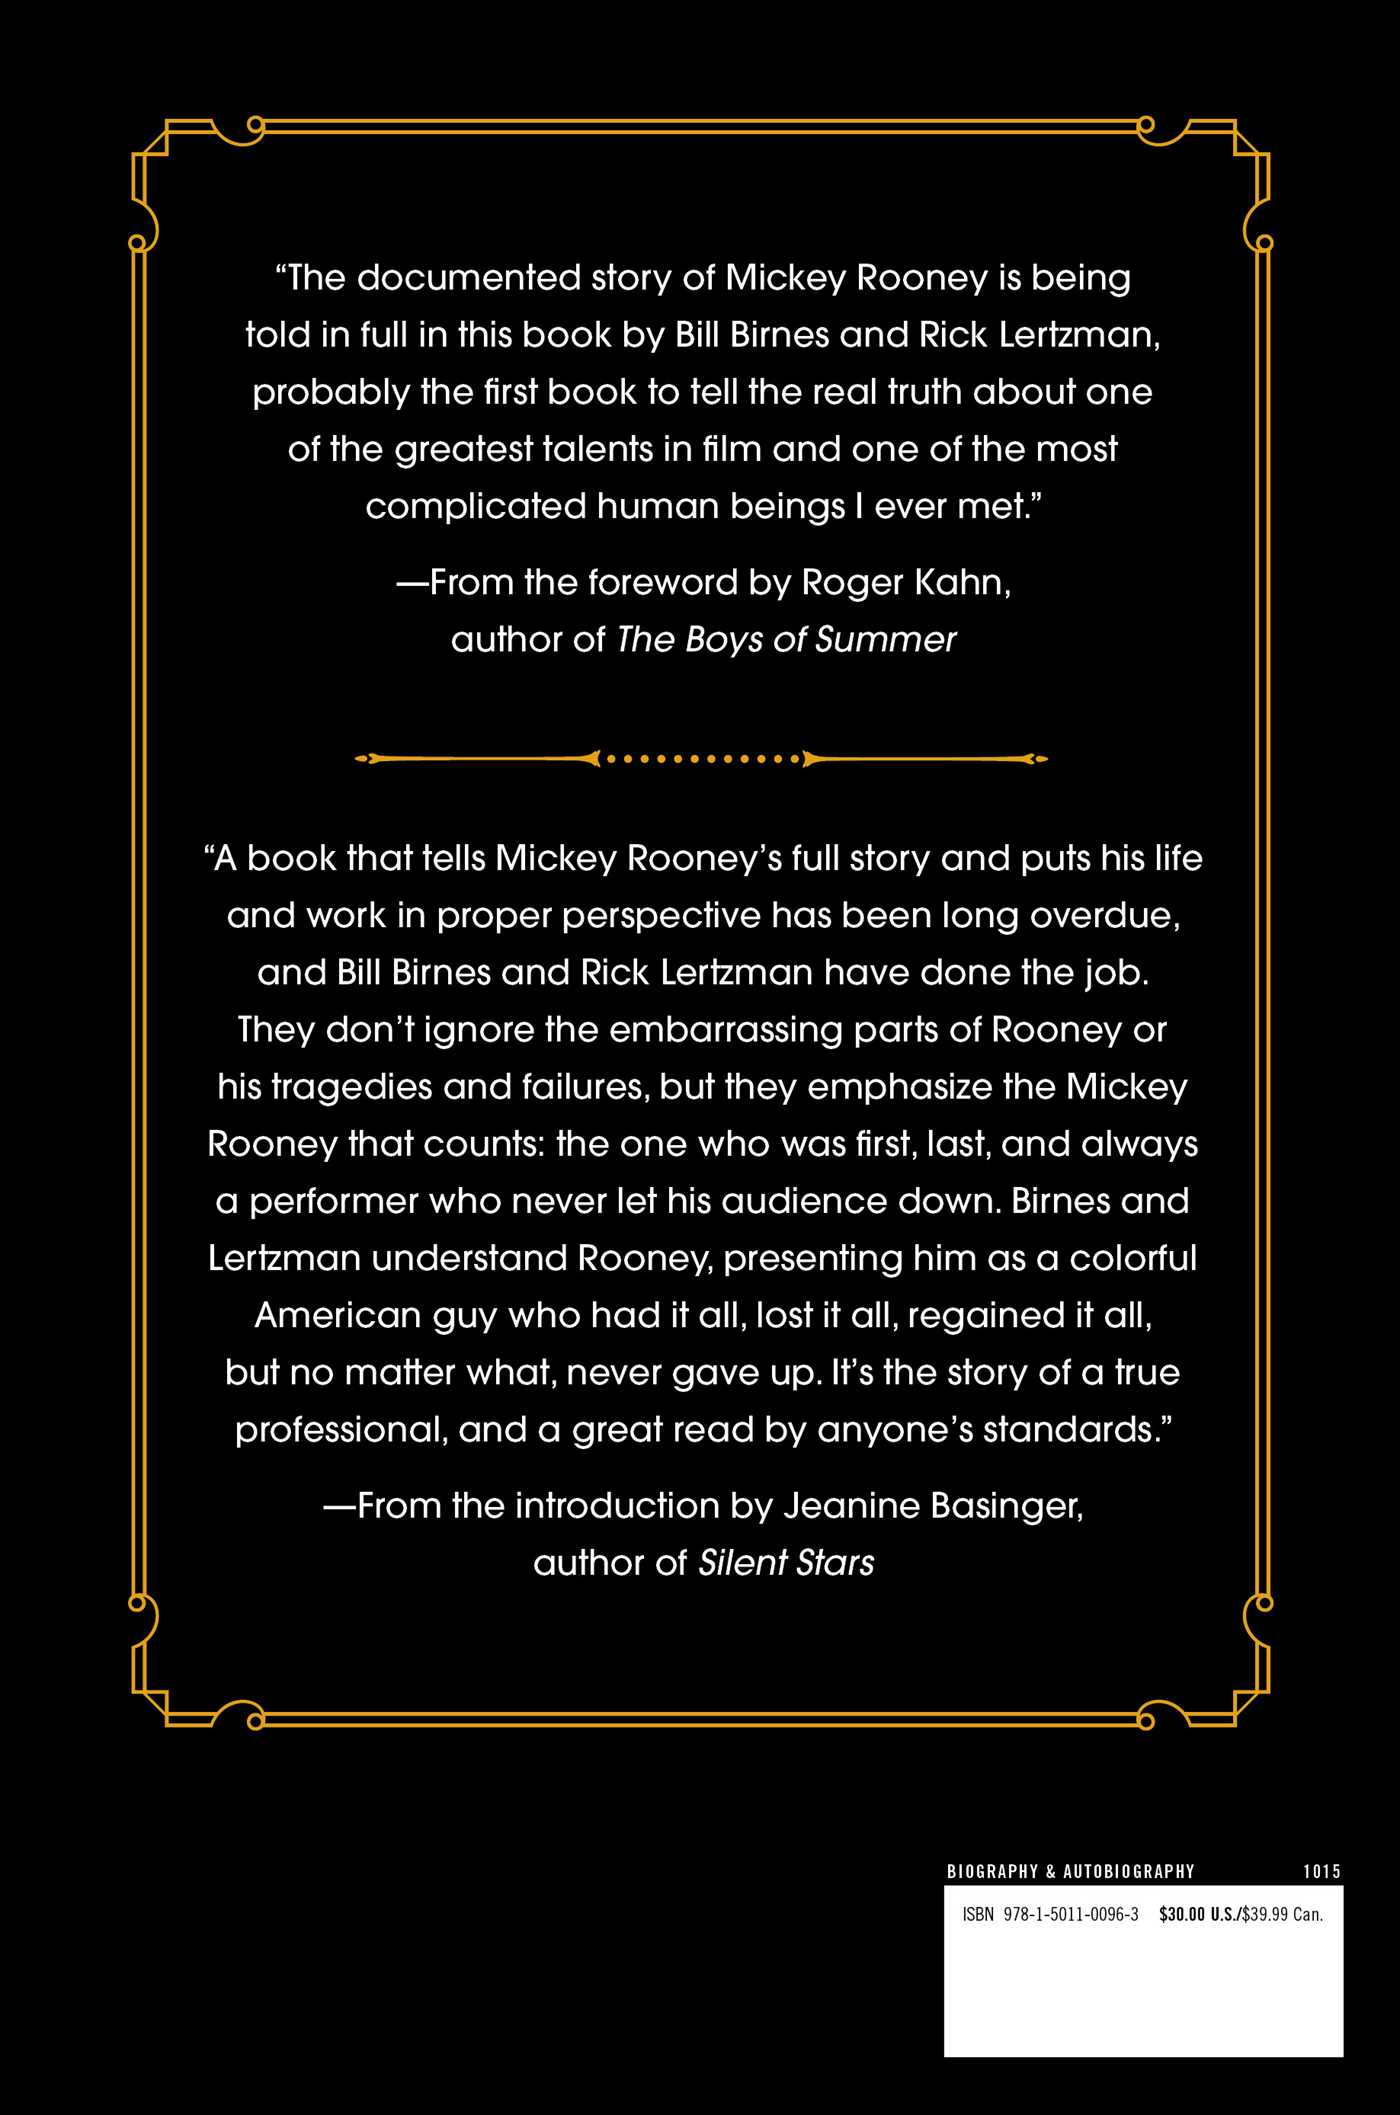 The life and times of mickey rooney 9781501100963 hr back